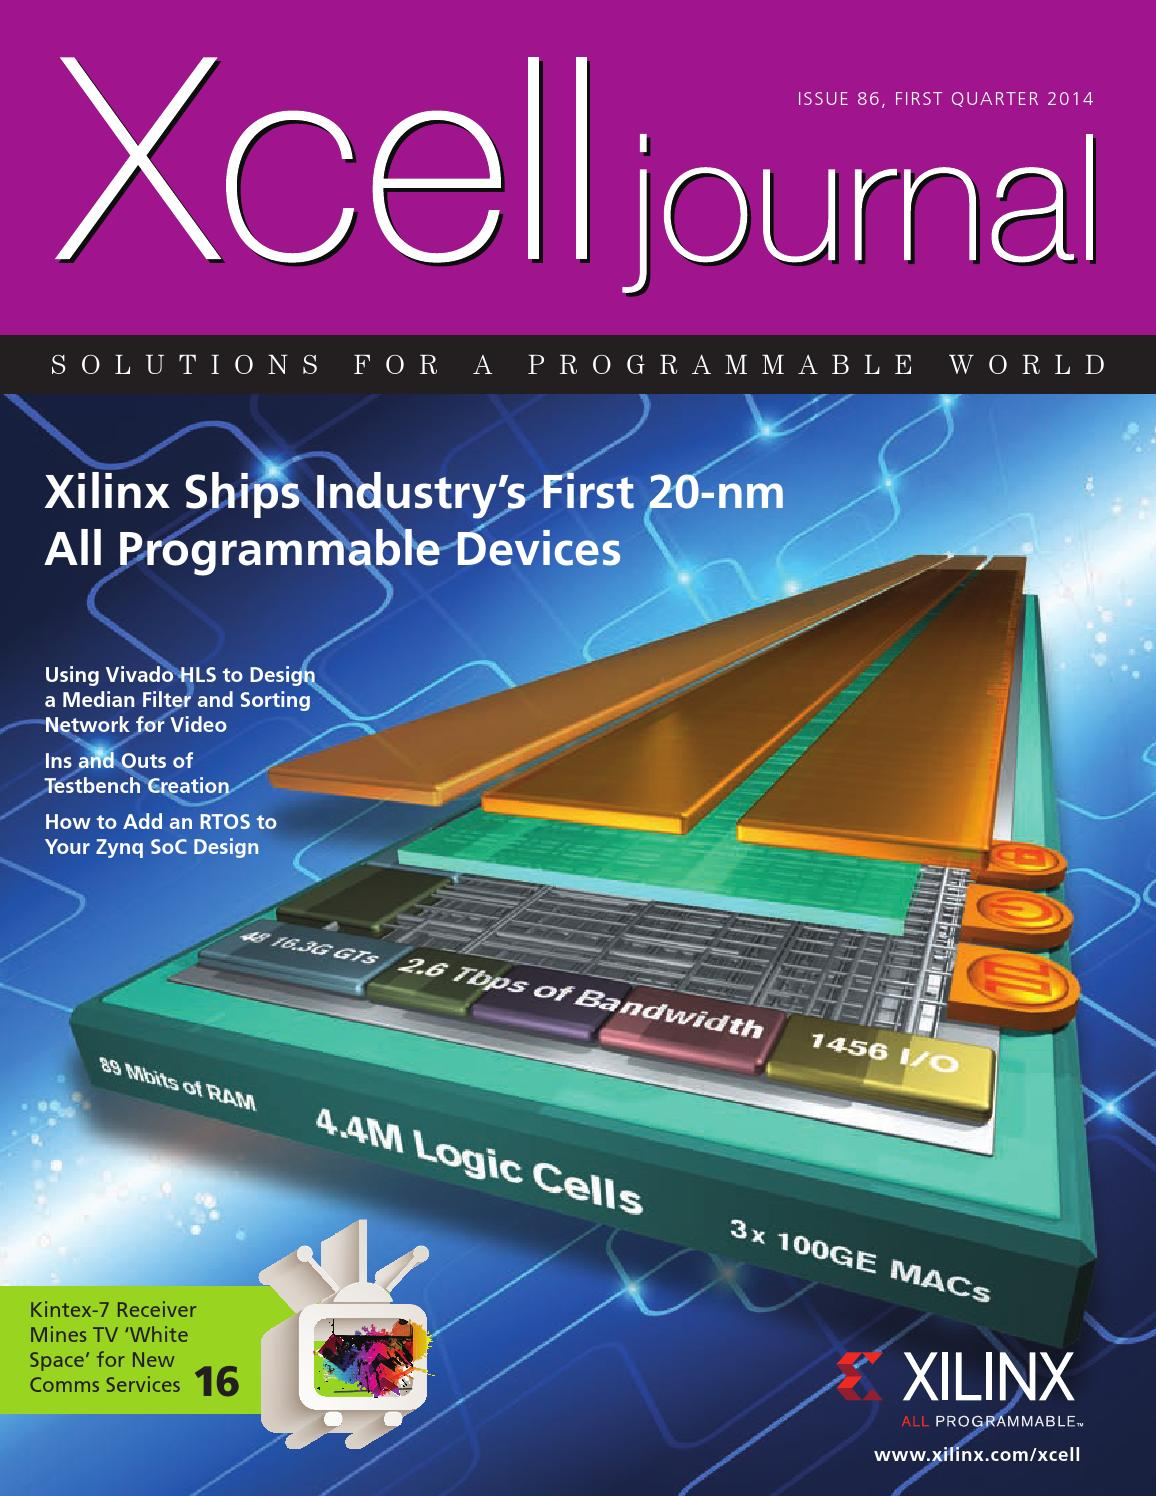 Xcell journal issue 86 by Xilinx Xcell Publications - issuu